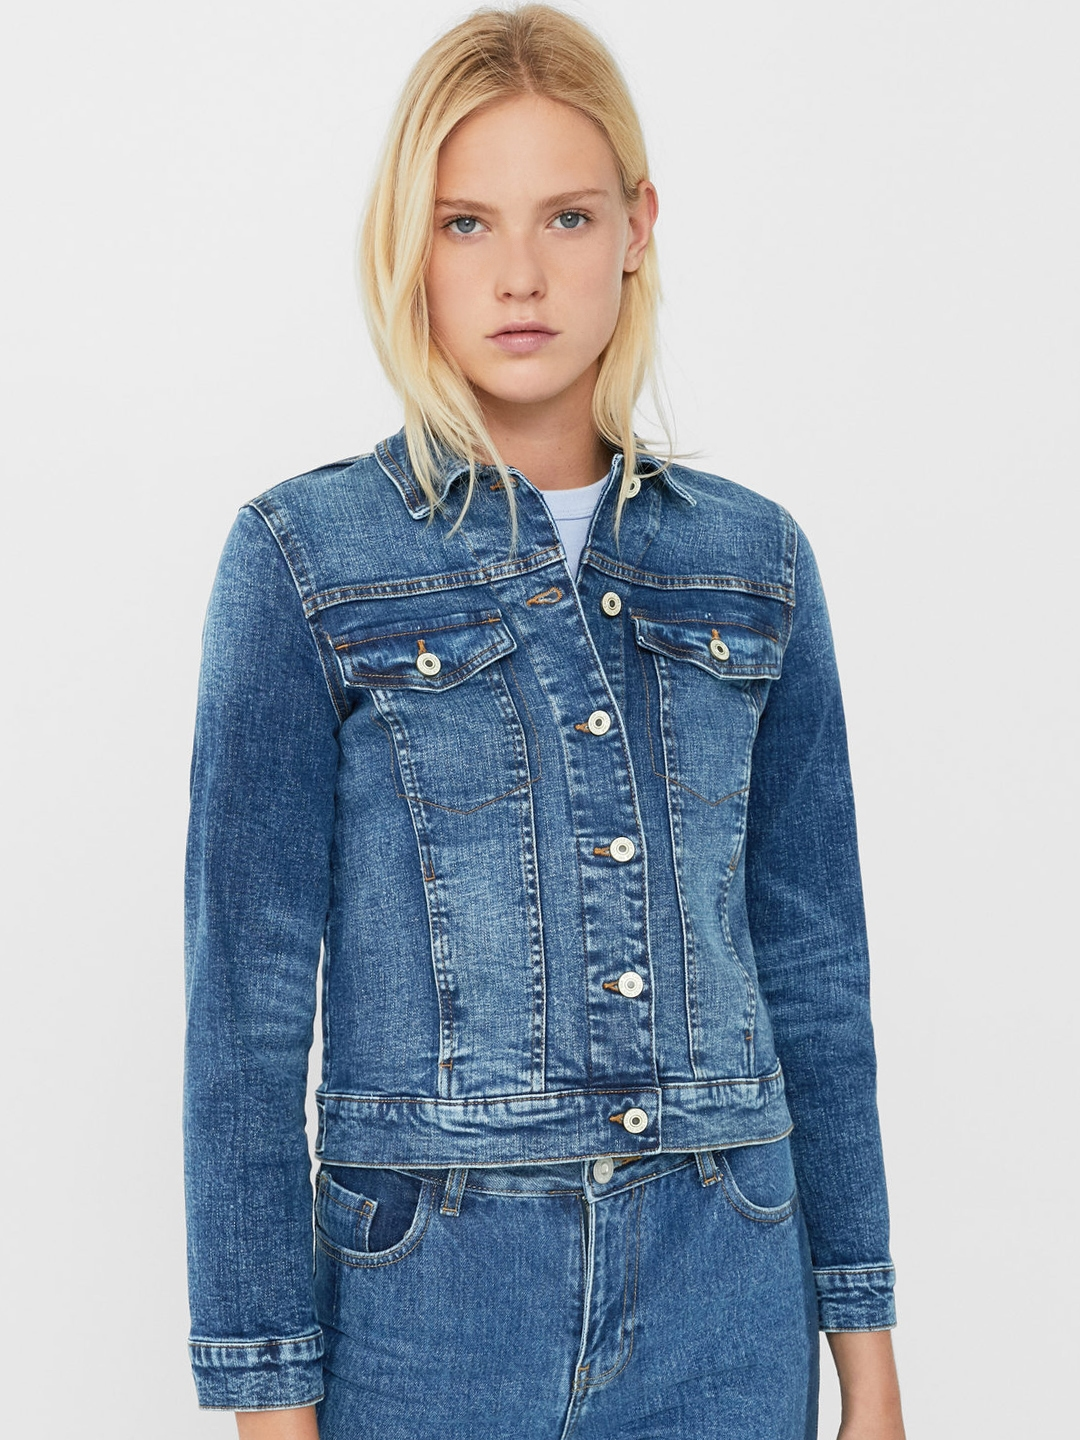 Blue Denim Jackets - Buy Blue Denim Jackets online in India